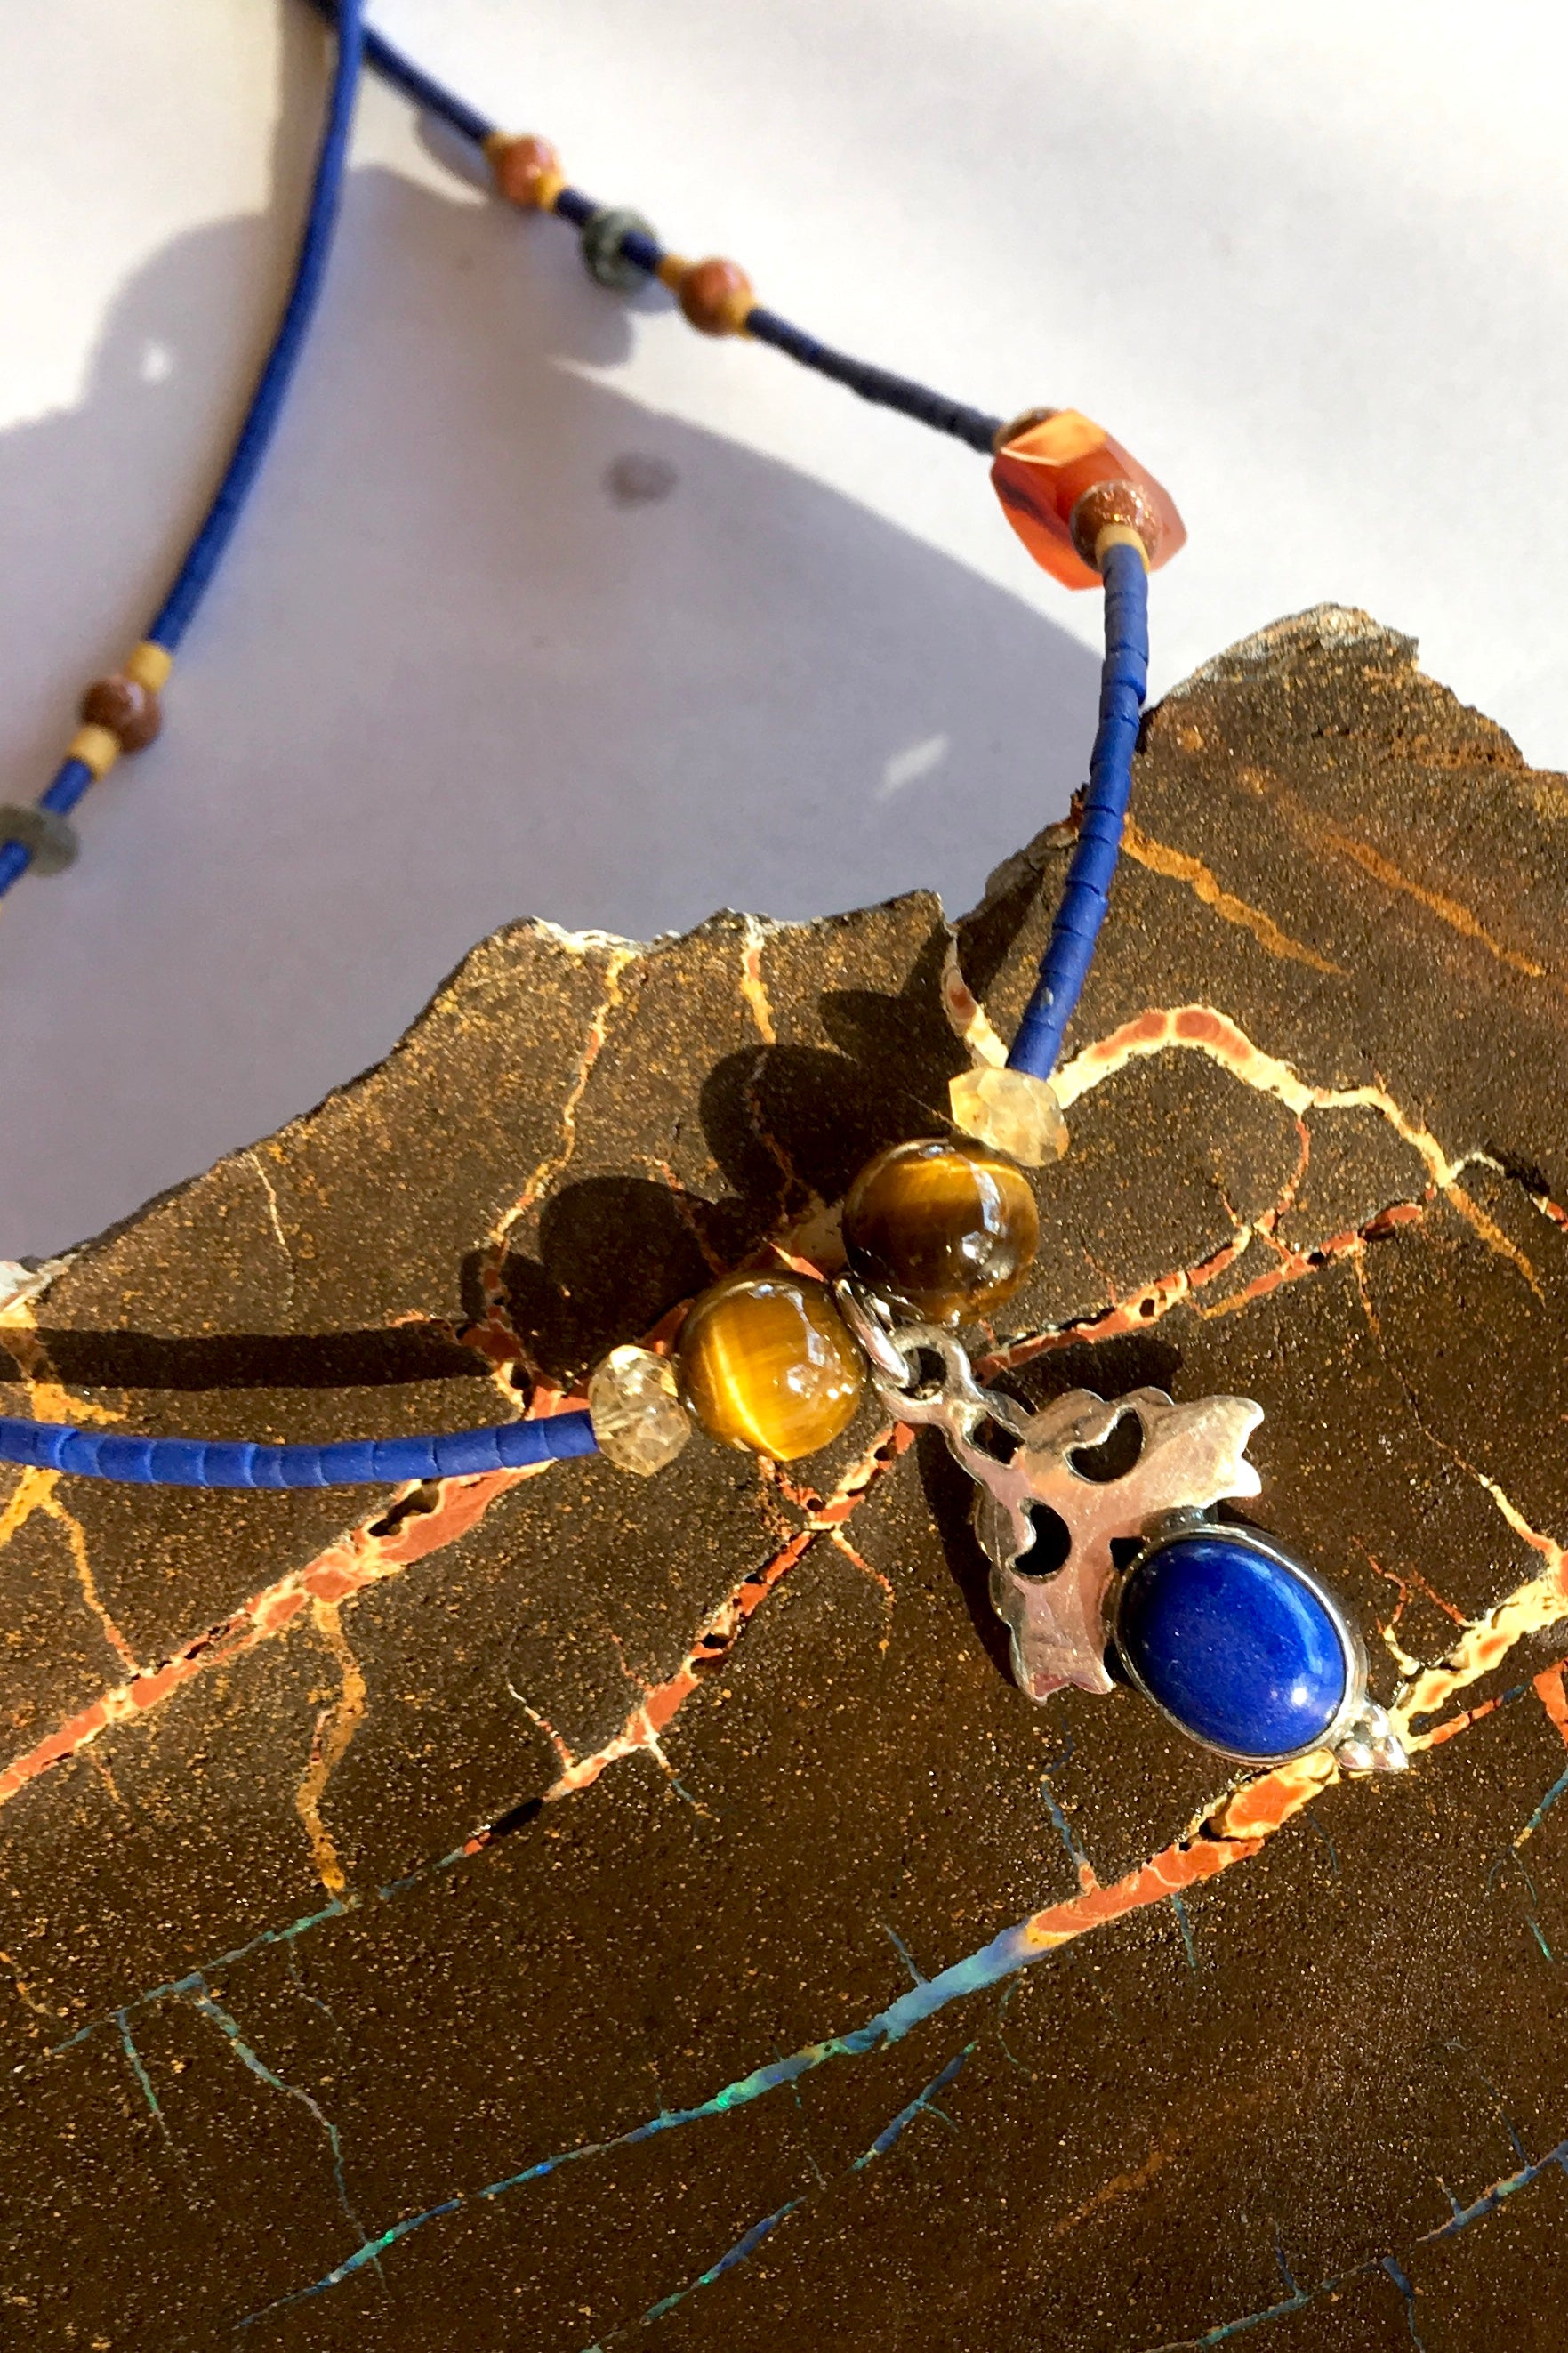 Necklace Cay with Lapis Pendant is 40cm in length with 5 cm extender and Centre piece in 925 silver and lapis lazuli cabachon and beads include Lapis Lazuli, carnelian, tigers eye, faceted semi precious stone and Turkish glass beads.